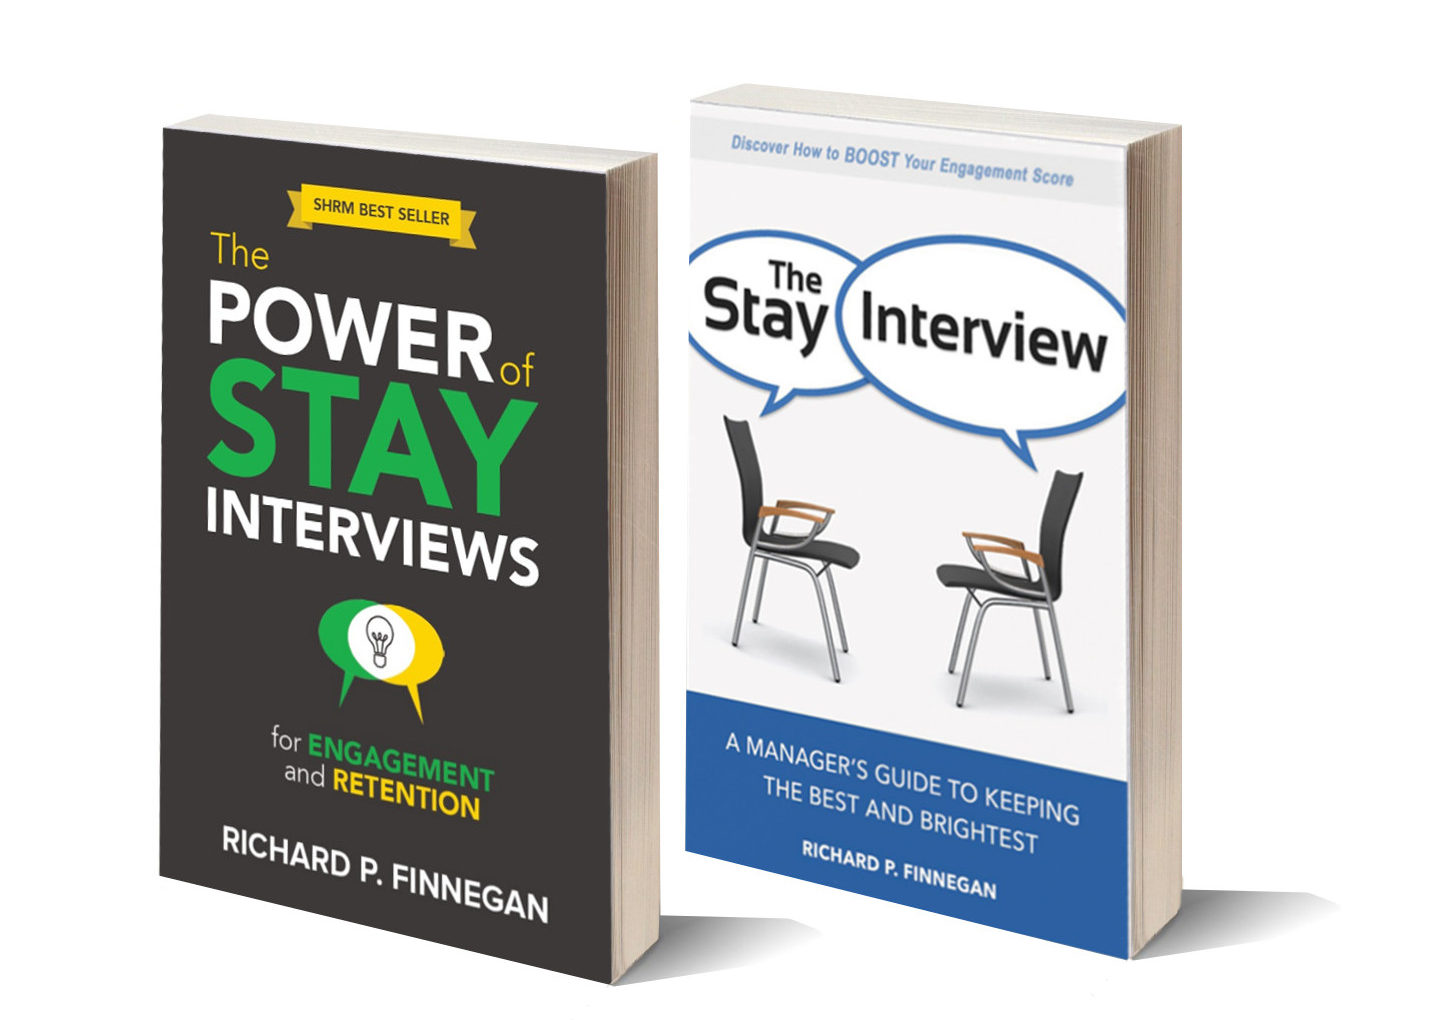 Finnegan Books On Stay Interviews New Covers